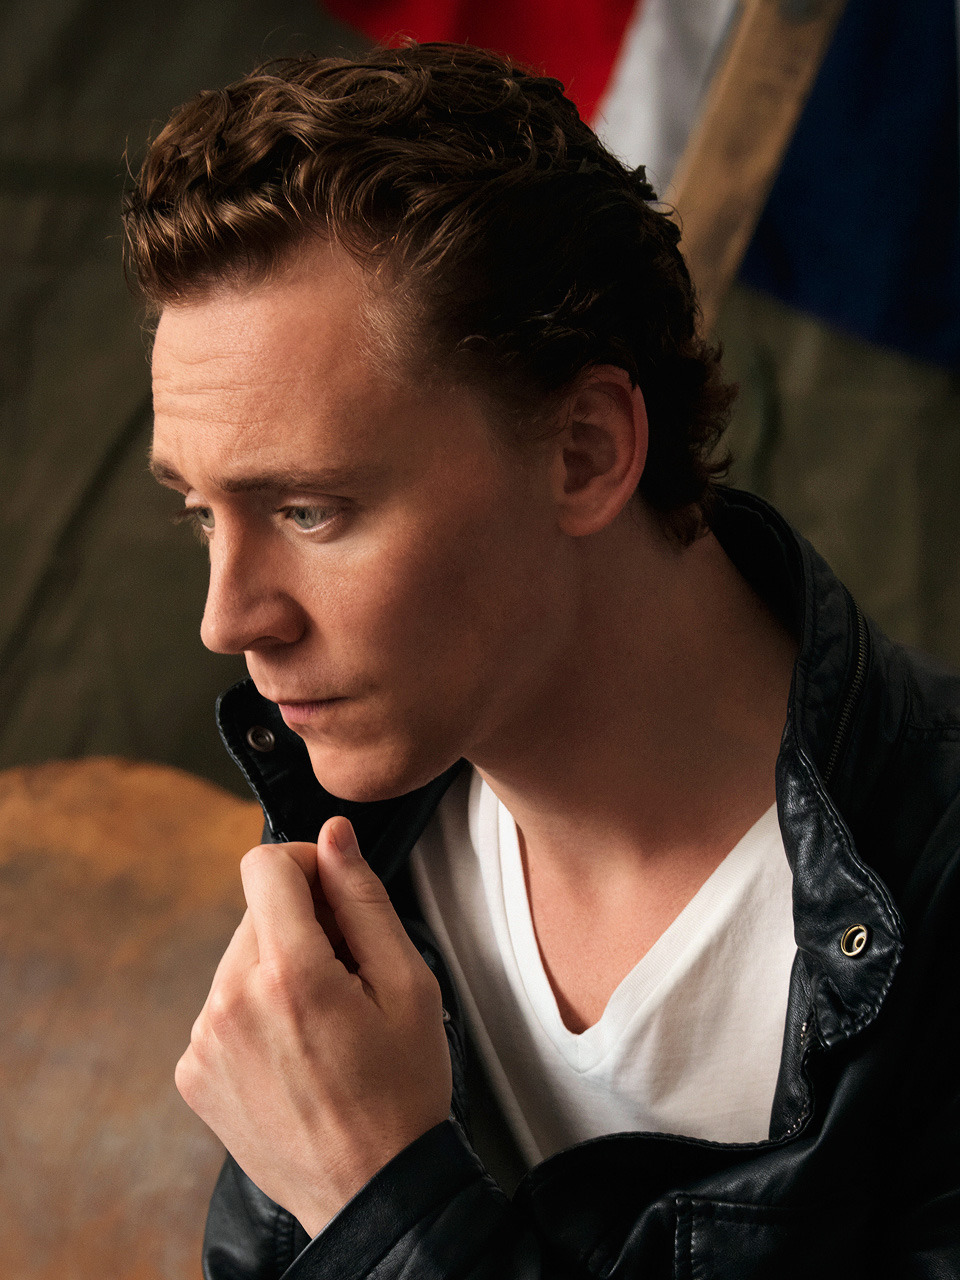 repimg:  Tom Hiddleston #11